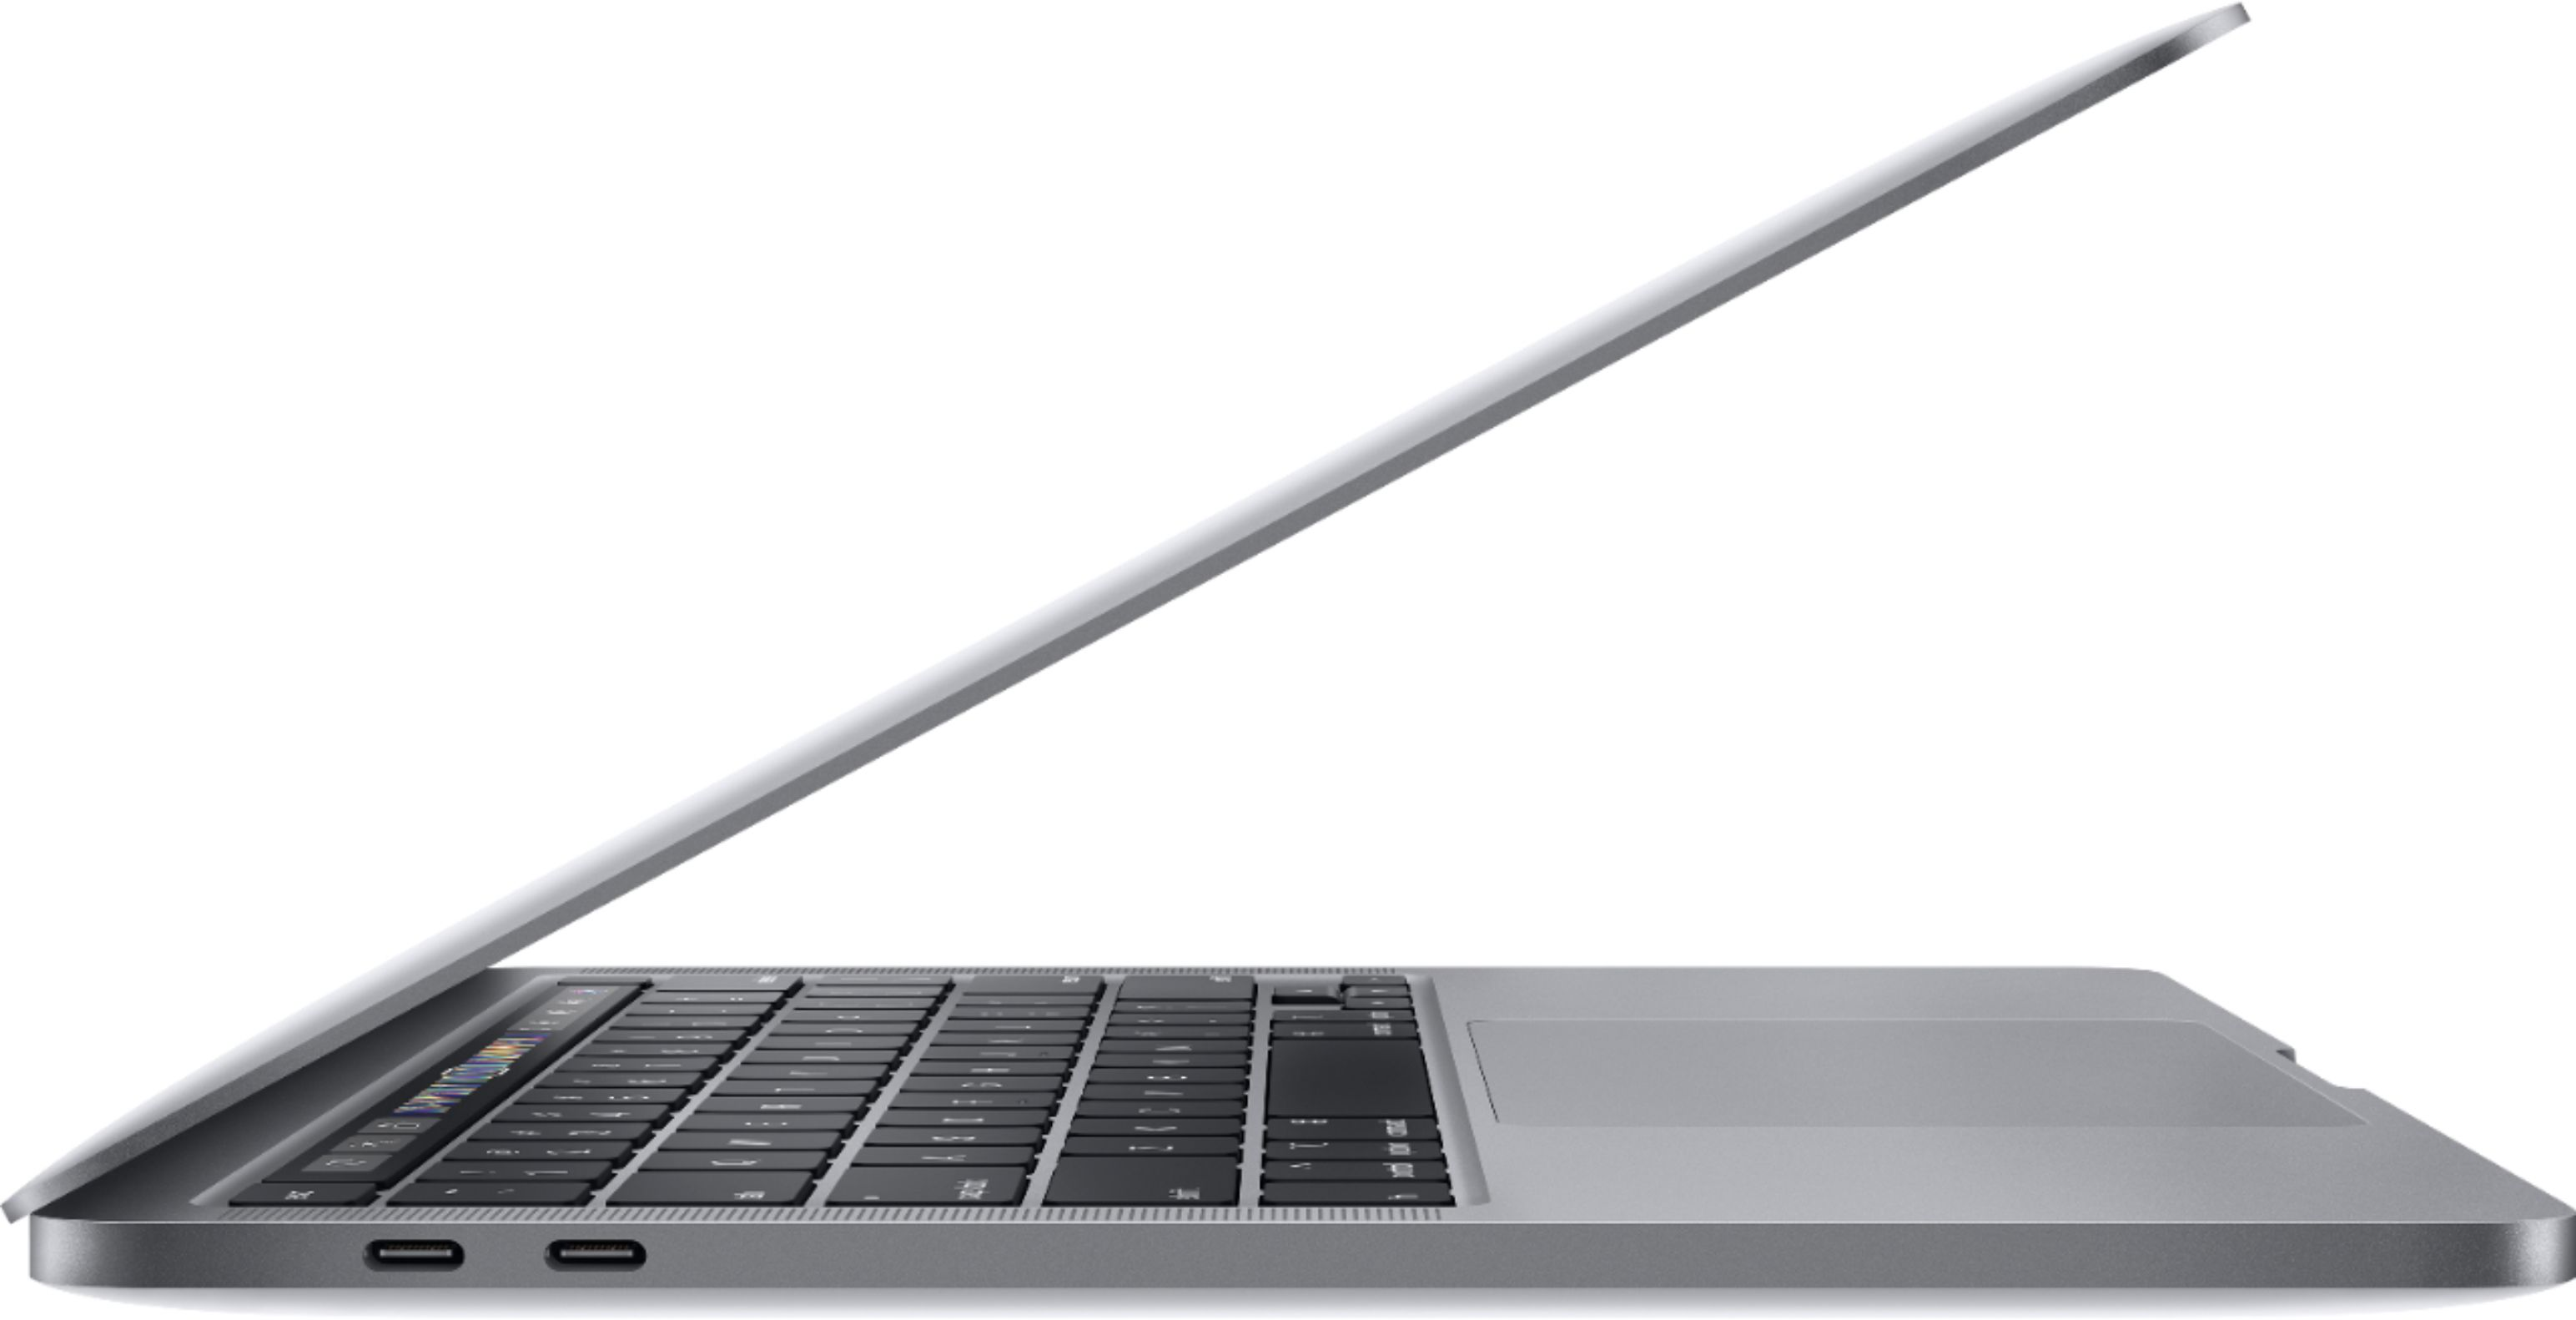 """Alt View Zoom 11. Apple - Geek Squad Certified Refurbished MacBook Pro - 13"""" Display with Touch Bar - Intel Core i5 - 8GB Memory - 256GB SSD - Space Gray."""